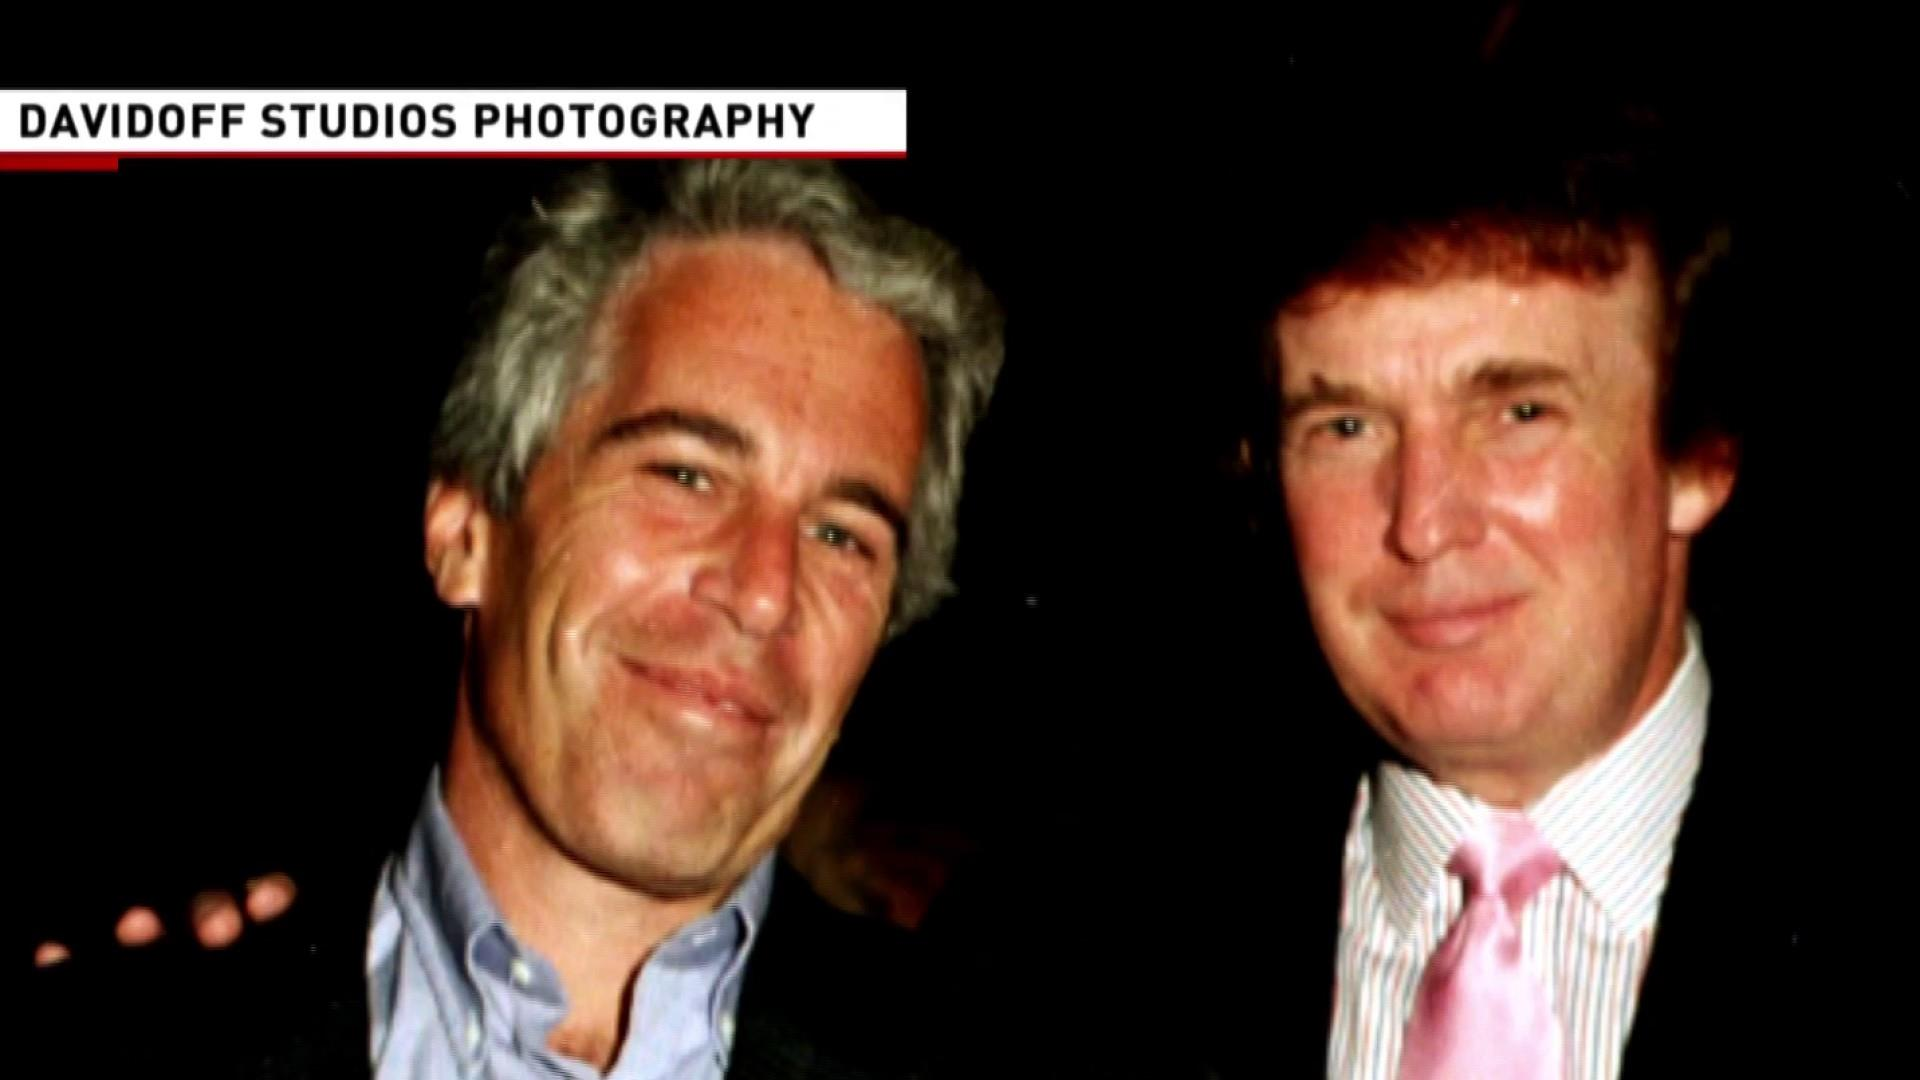 Trump acquaintance Jeffrey Epstein charged with sex trafficking of minors